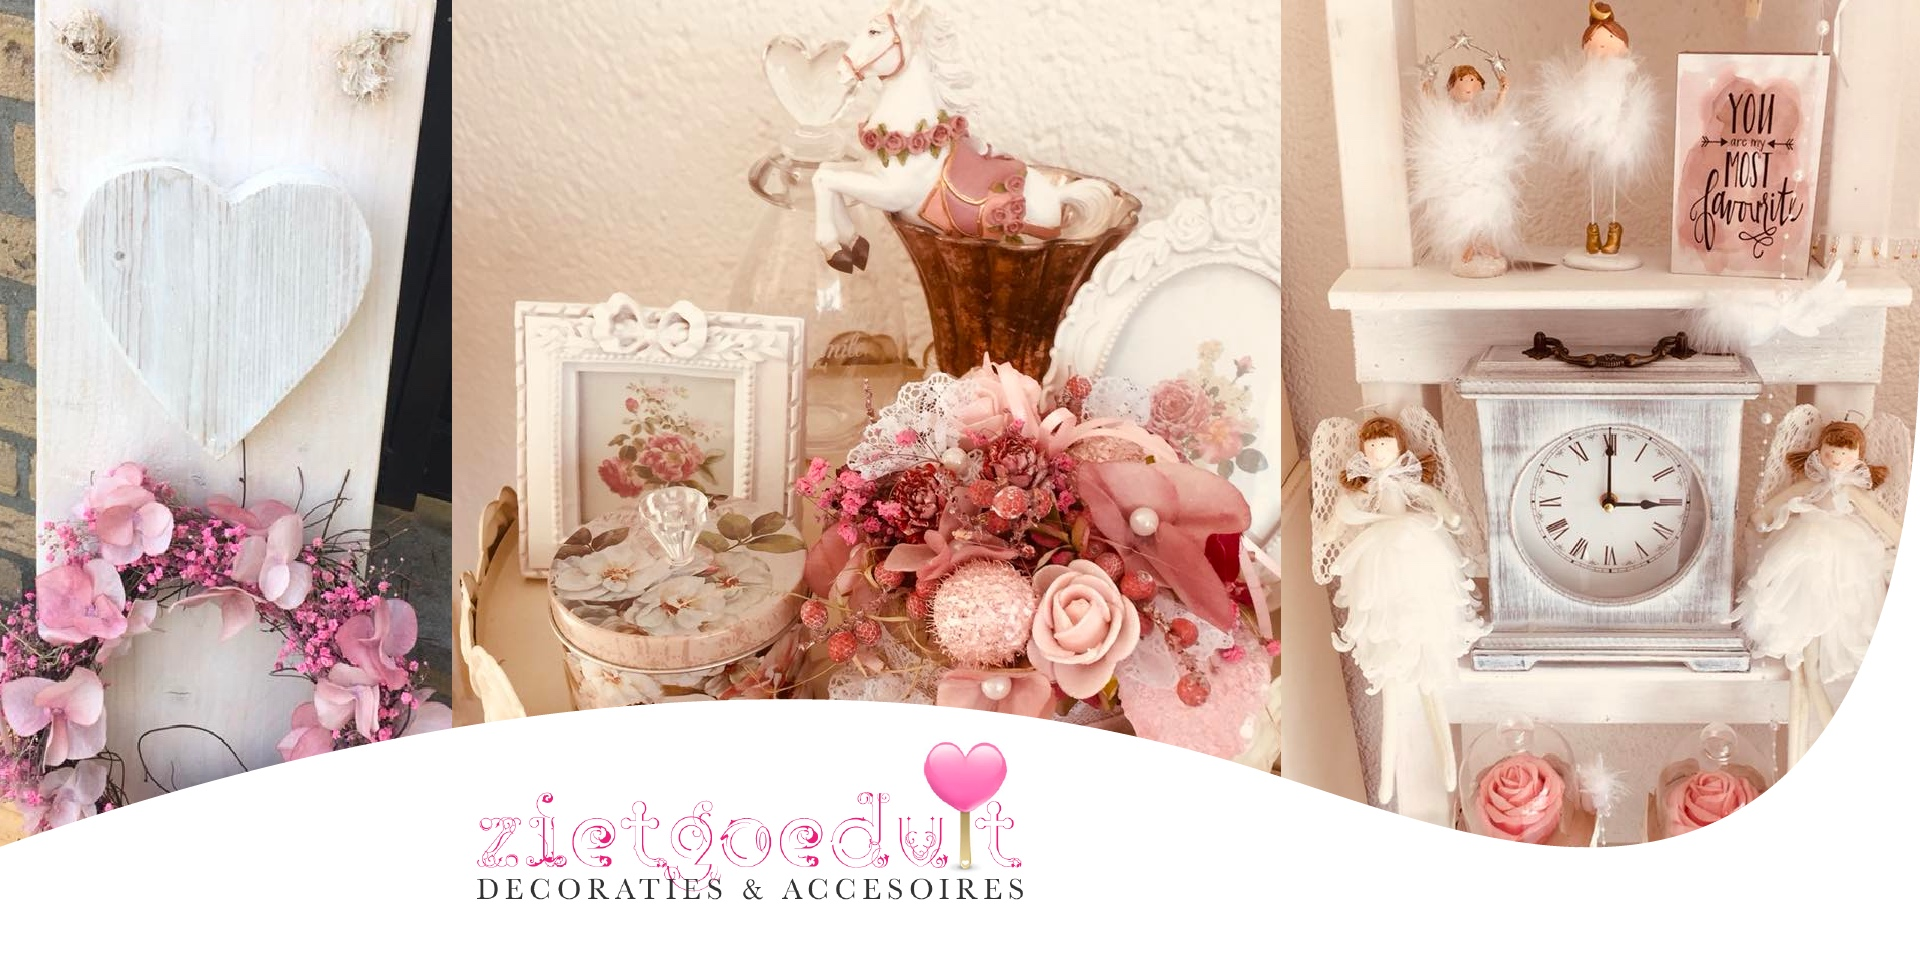 Zietgoeduit decoraties en accesoires